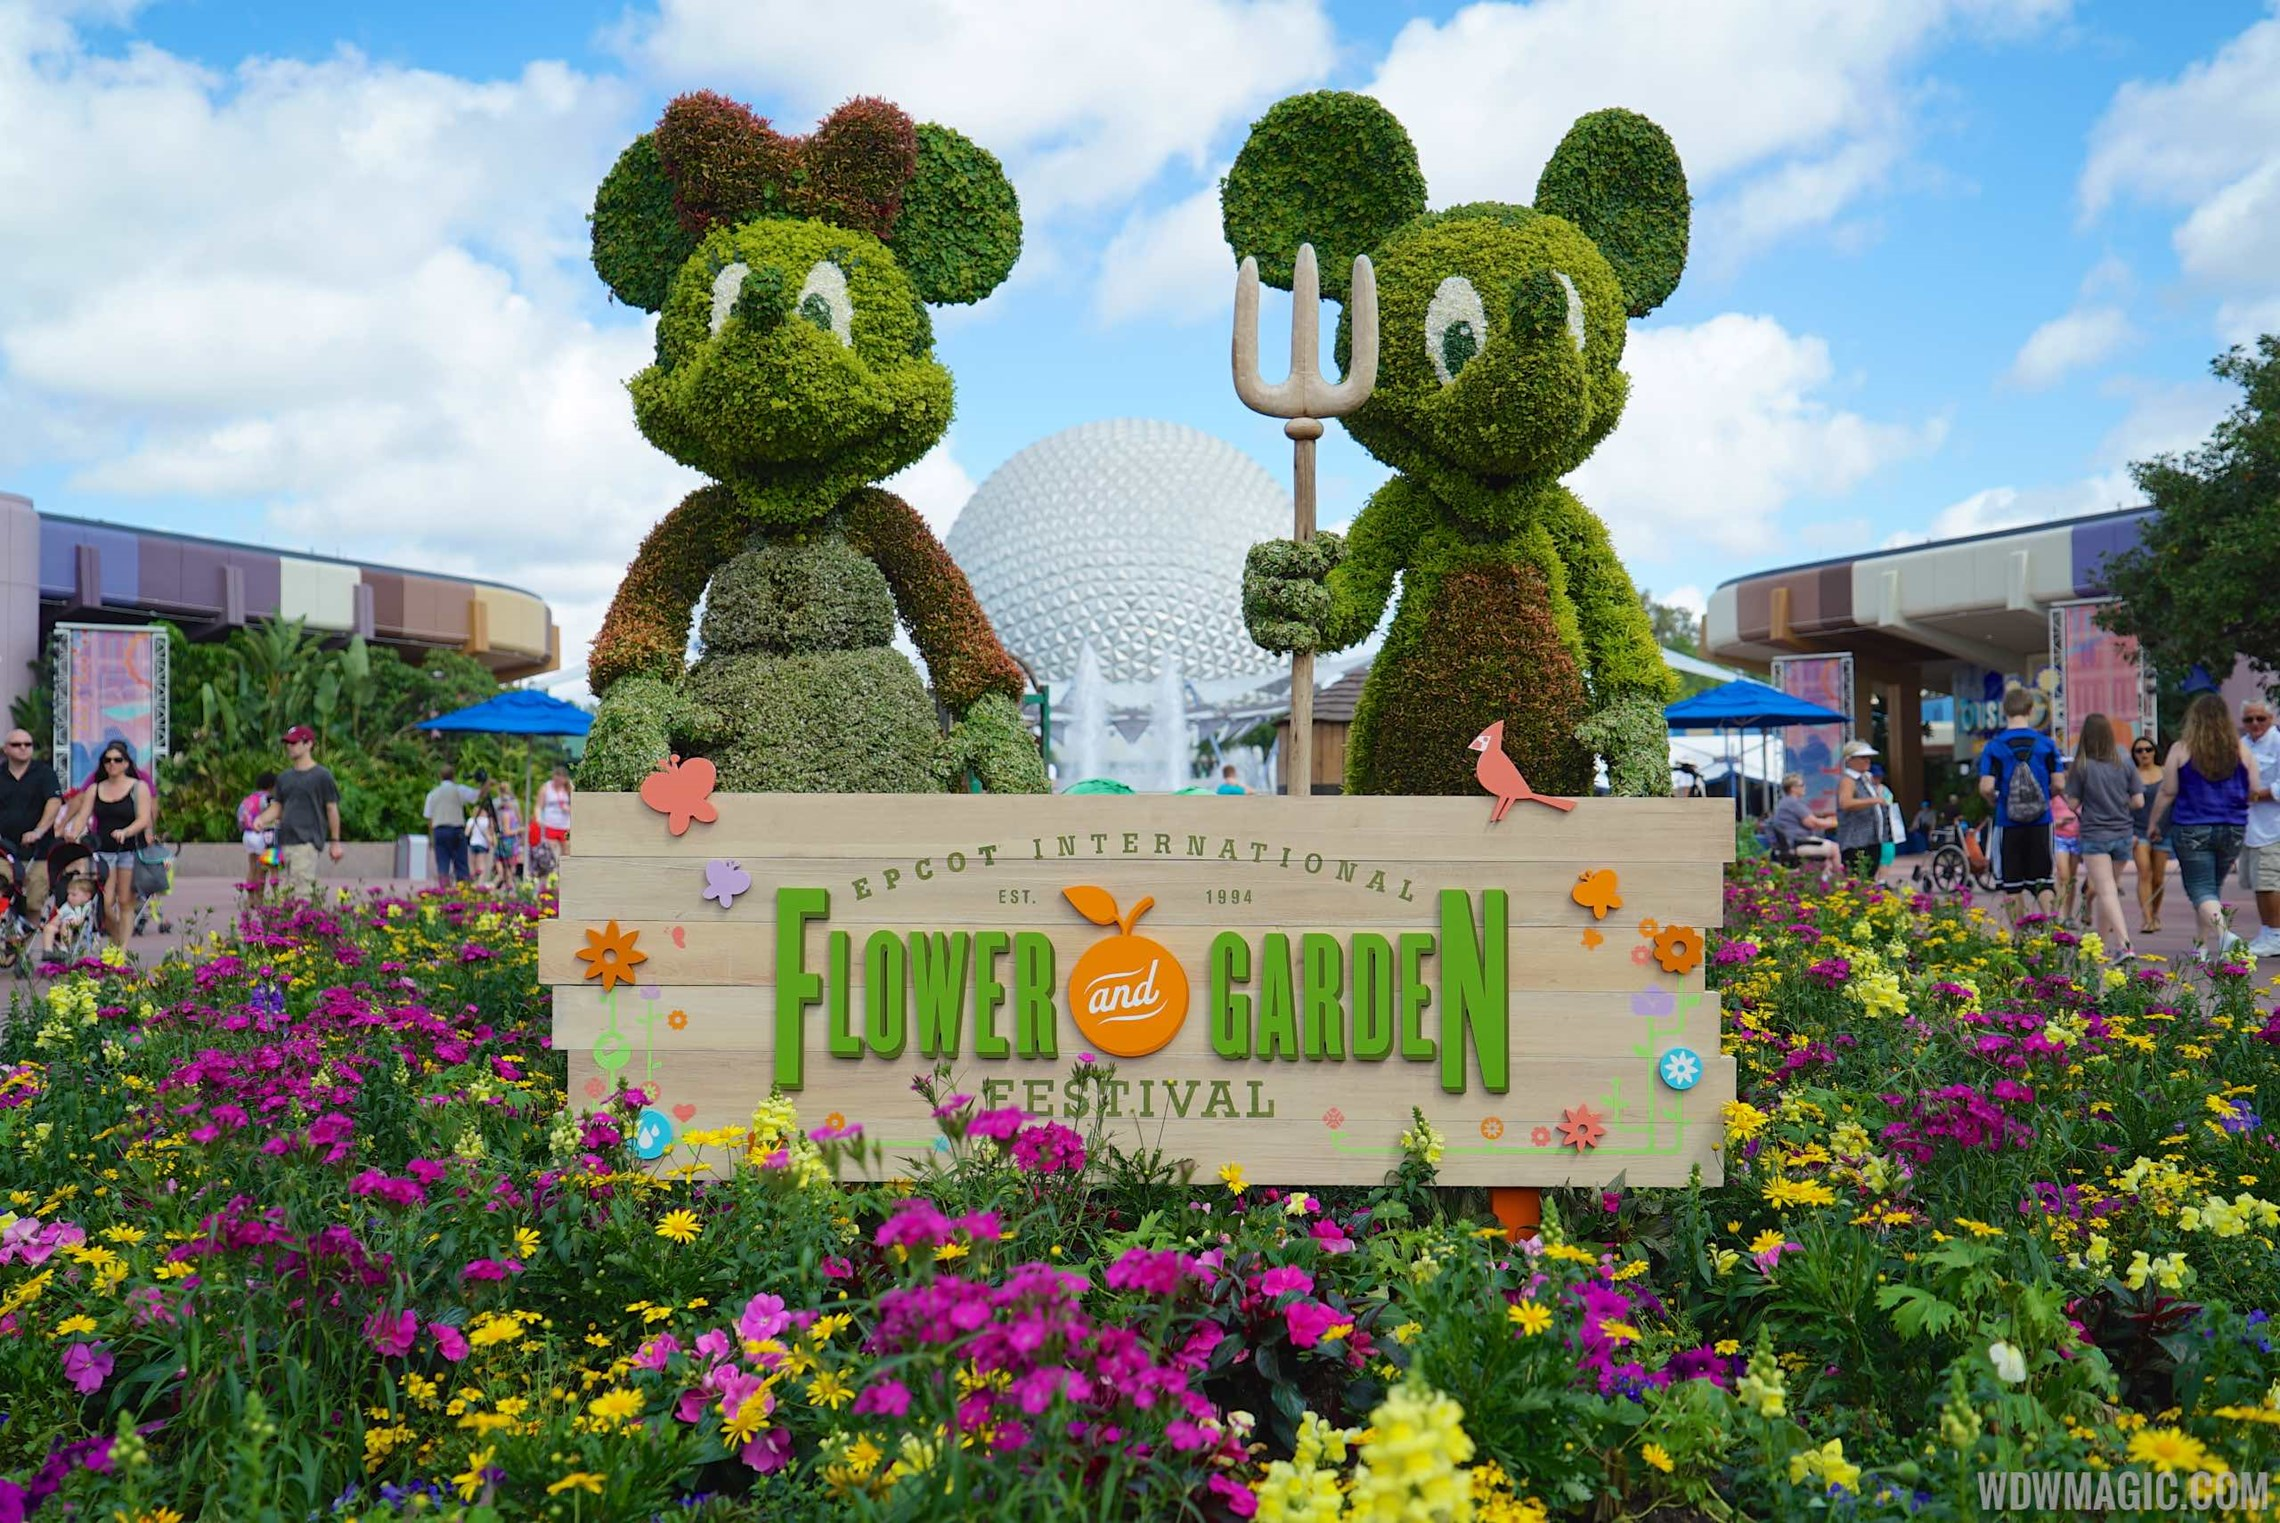 New Outdoor Kitchens and topiaries to join the 2017 Epcot International Flowe